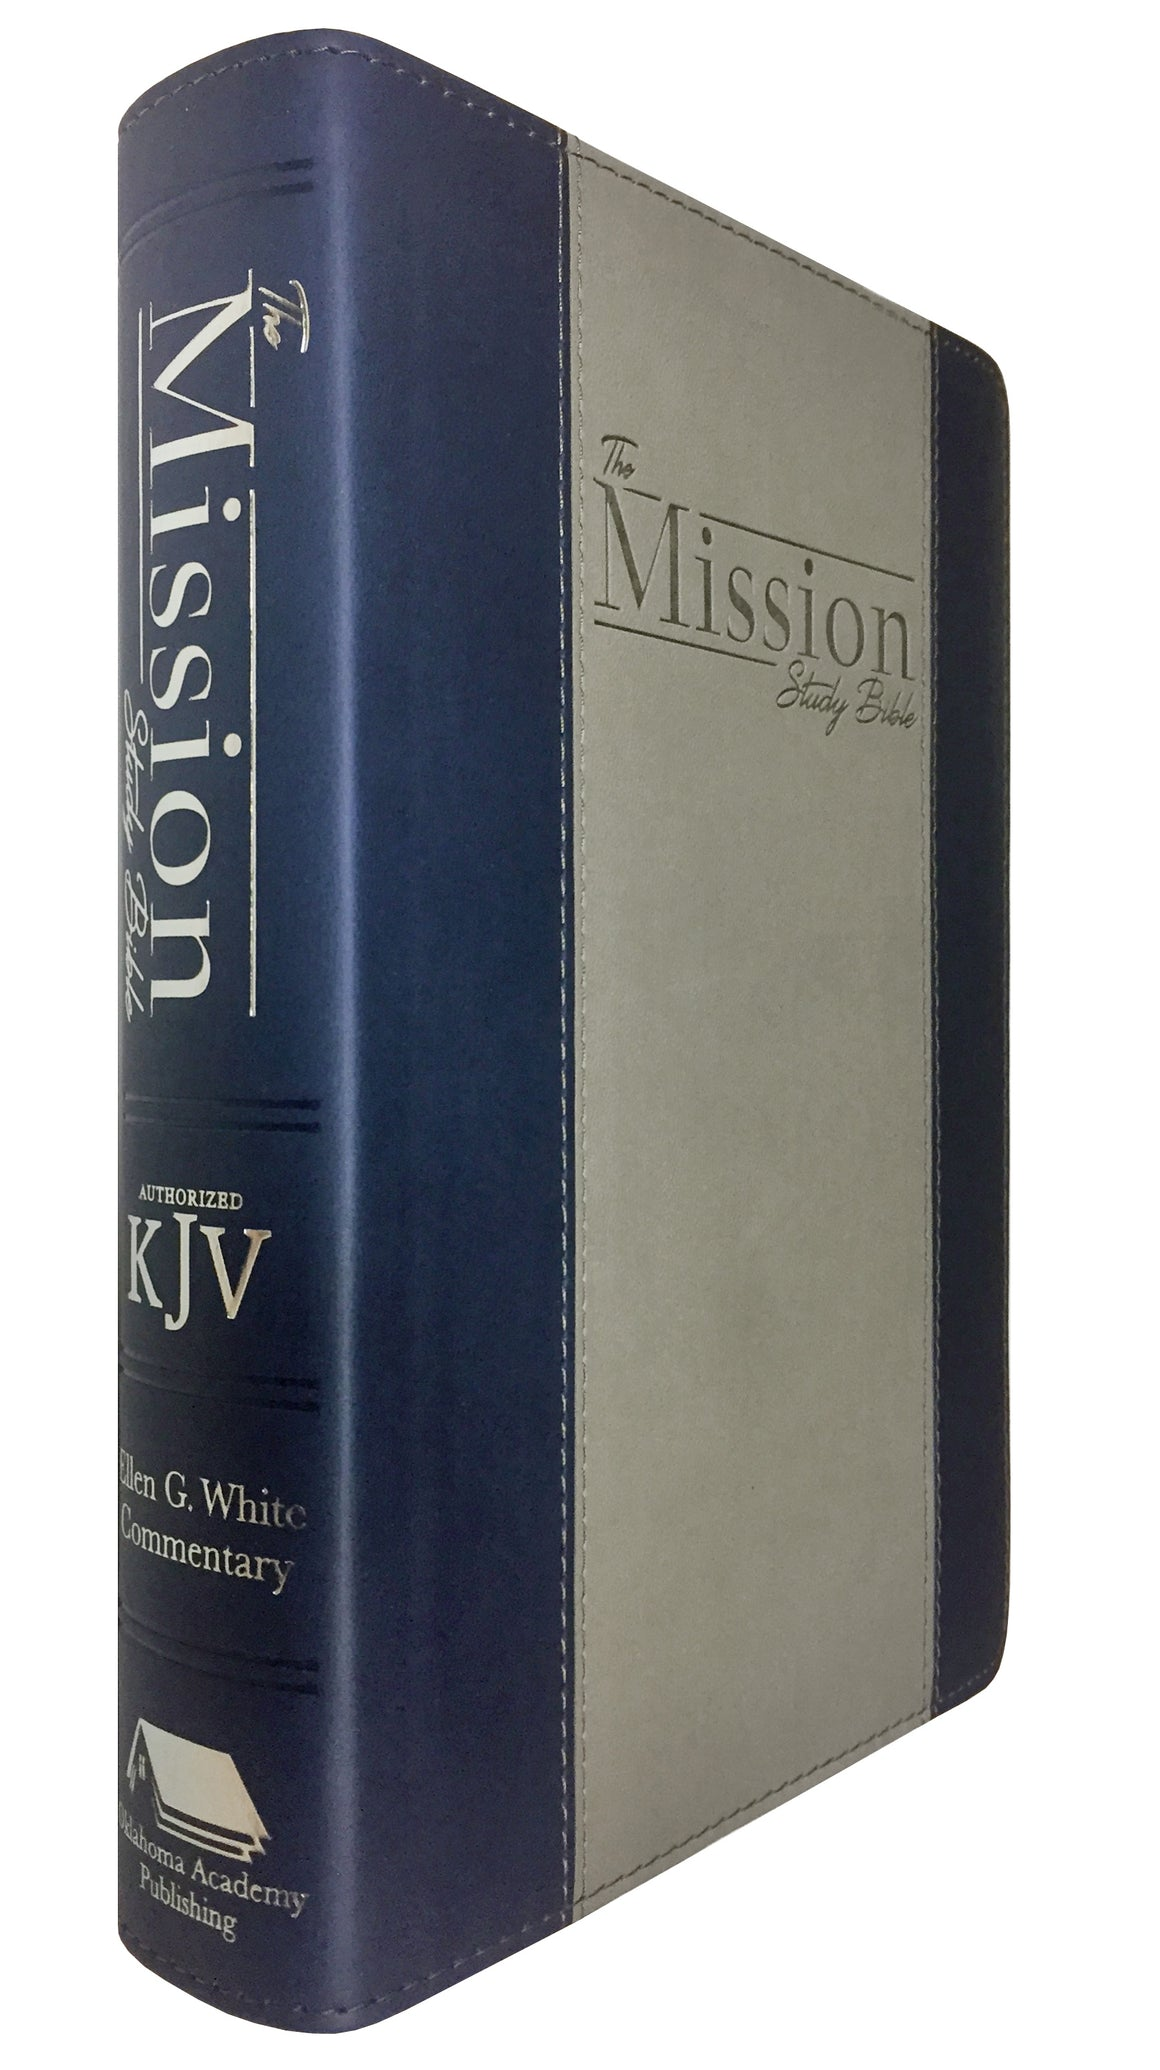 Bible: KJV, Mission Study Bible with EGW Comments, Sapphire